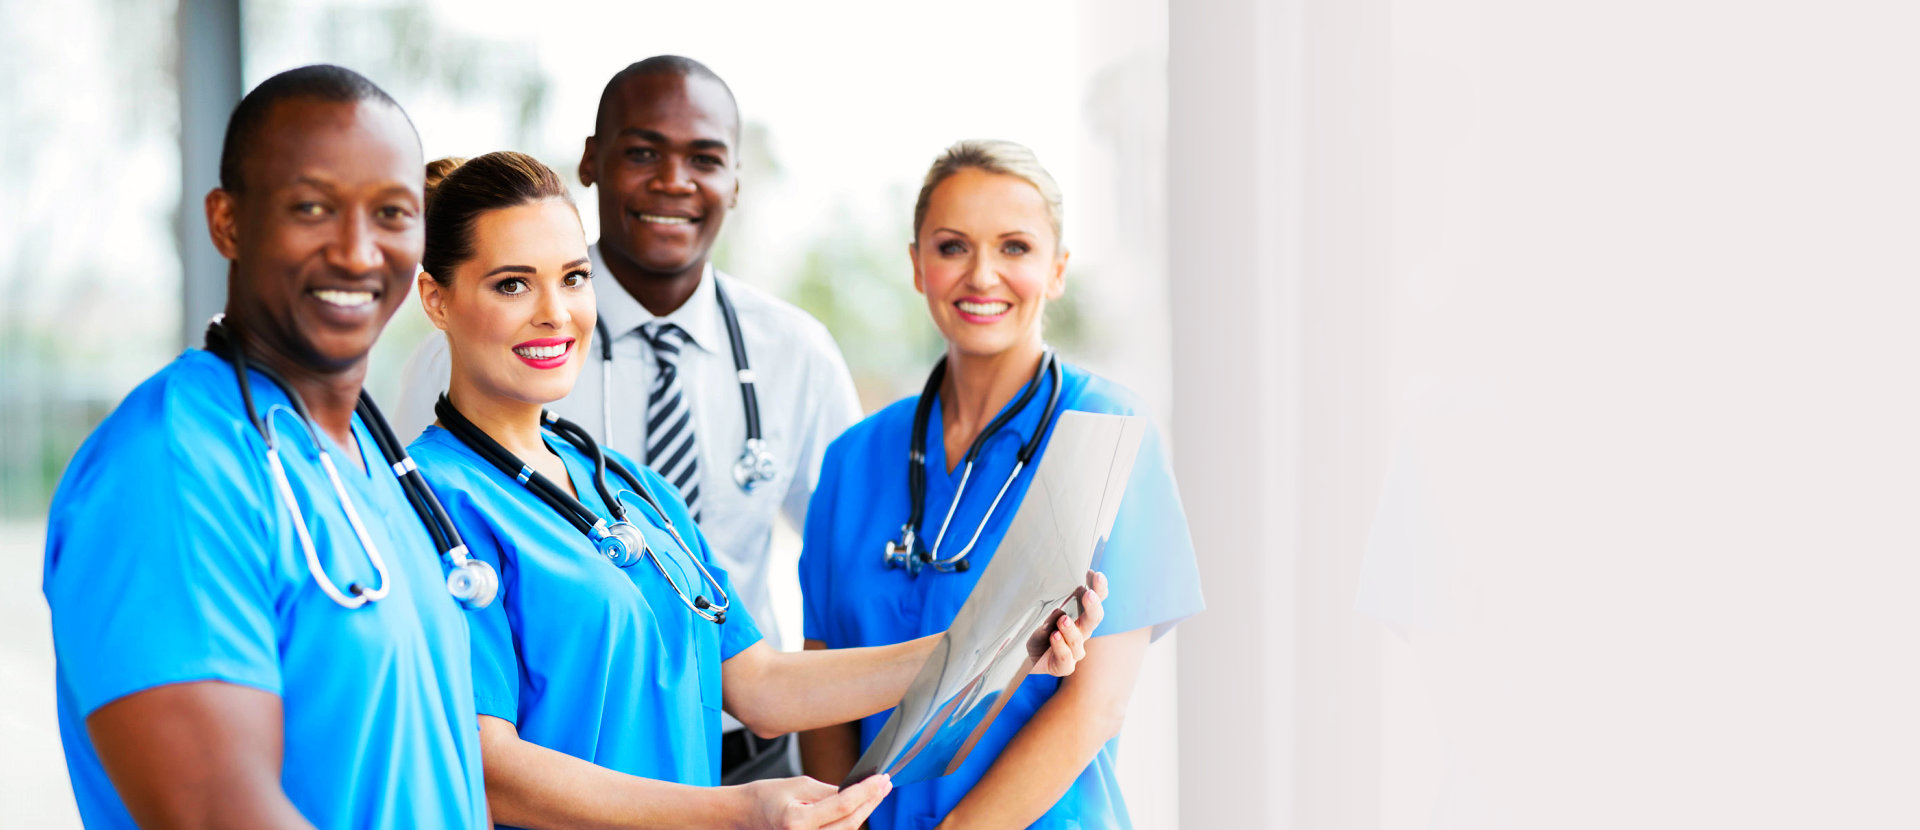 group of medical trainees smiling